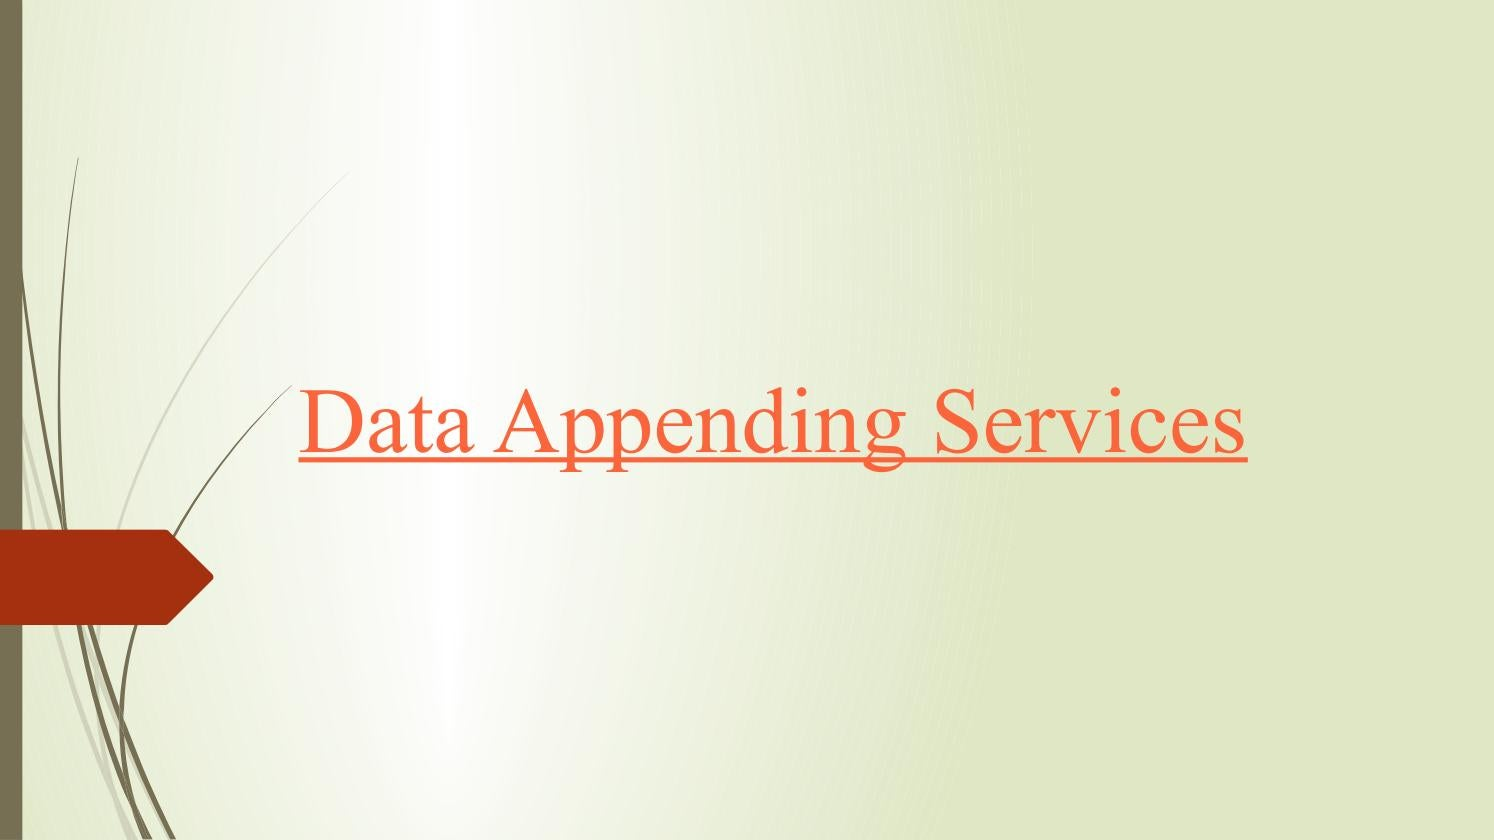 Data appending services by Infodataplace - issuu